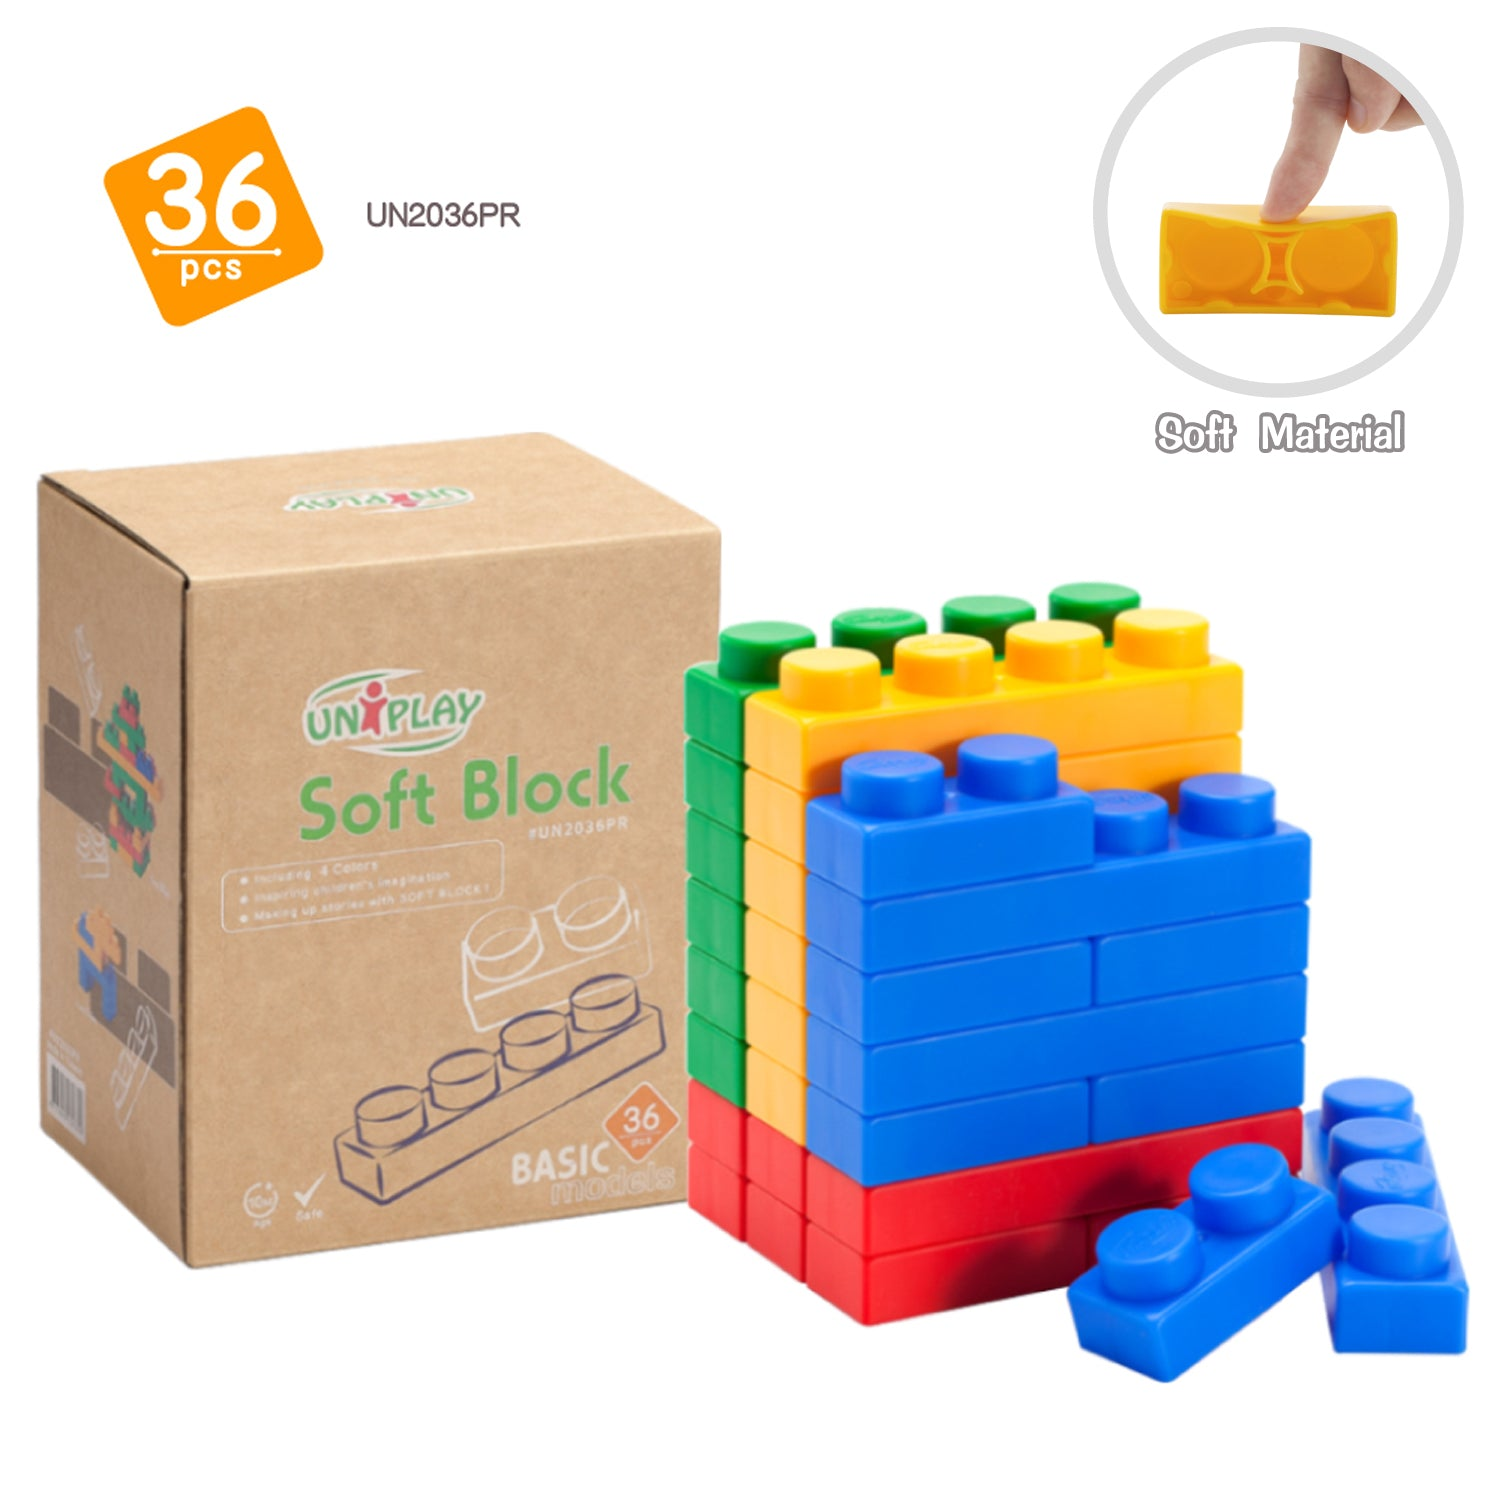 UNiPLAY Soft Building Blocks Basic Series 36pcs (#UN2036PR)